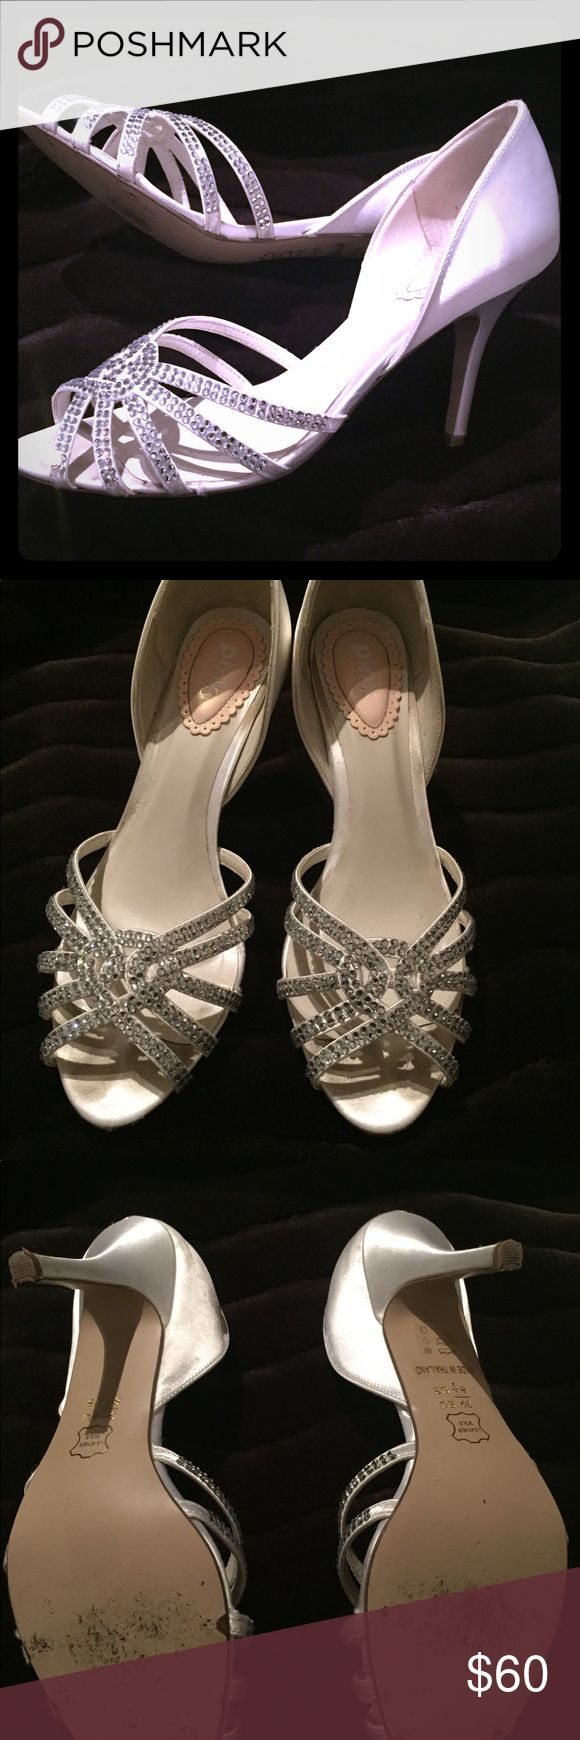 """Pink Paradox London Ivory satin heels Ivory satin and rhinestone detail peep toe heels.  Size 8.5.  Worn once in great condition.  Heel height 3 1/4"""" Paradox London Pink Shoes Heels"""